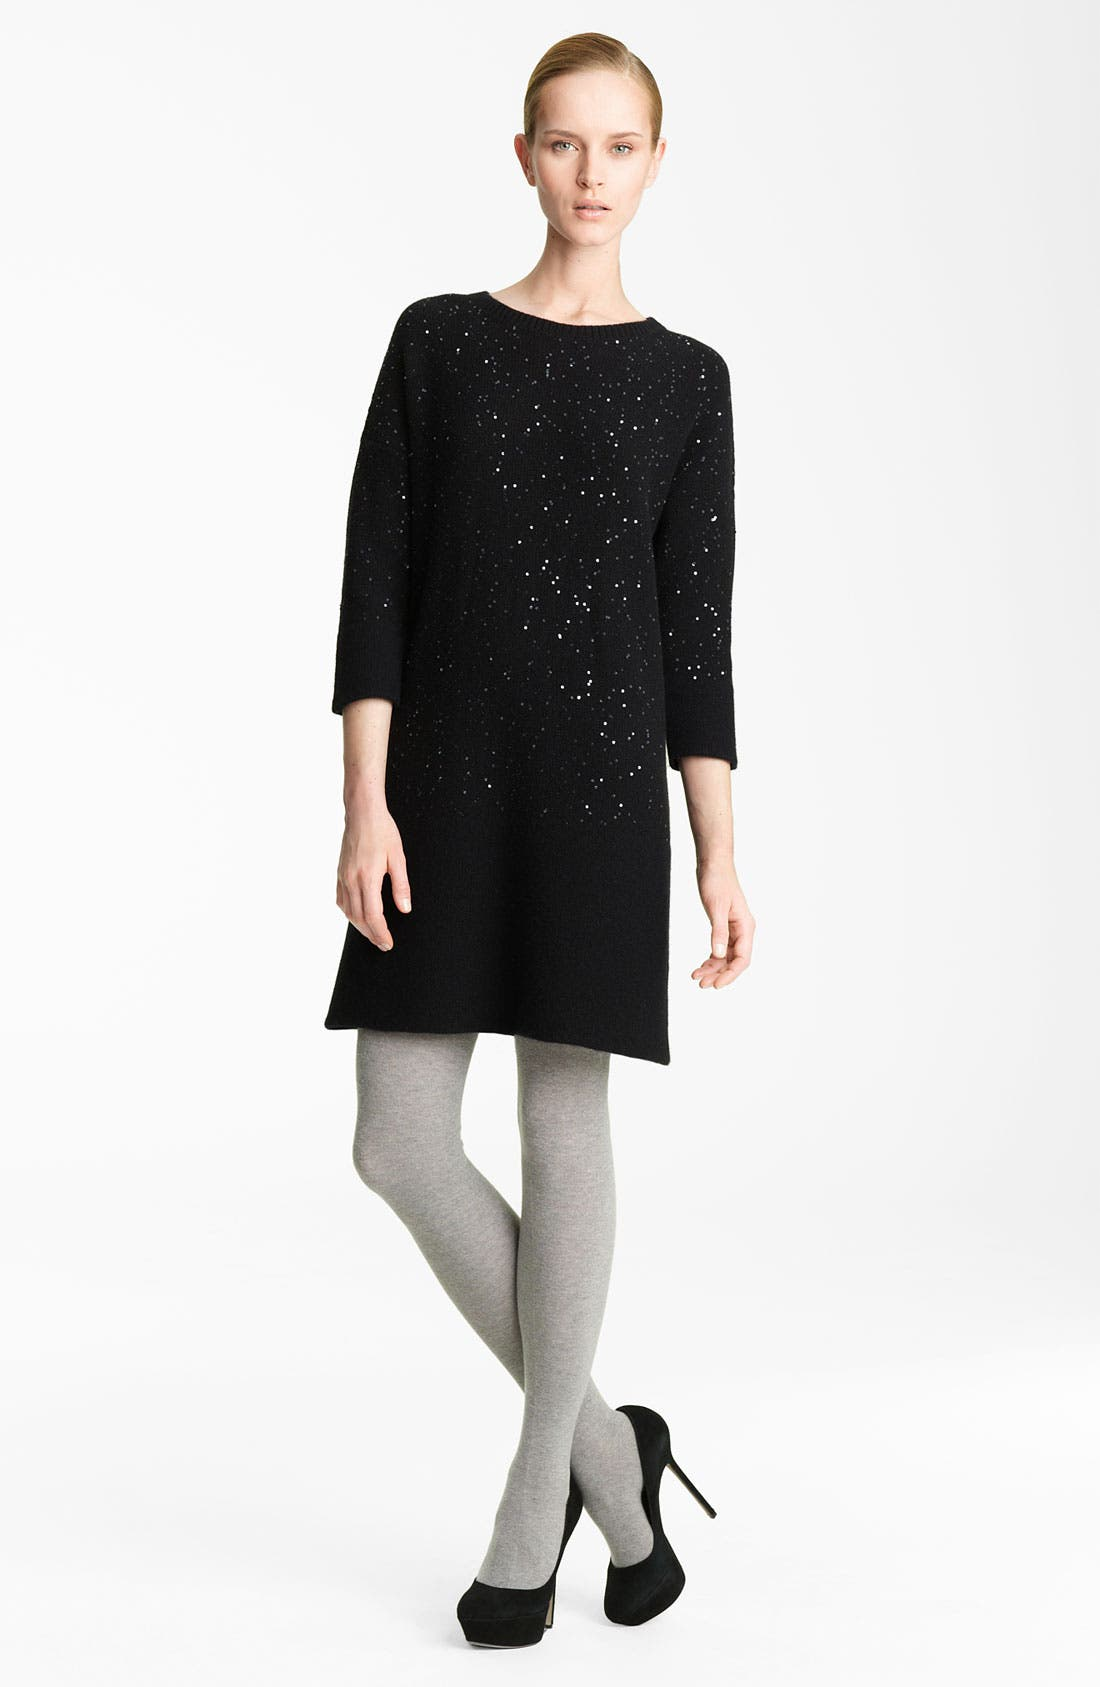 Alternate Image 1 Selected - Fabiana Filippi Sequin Detail Knit Dress